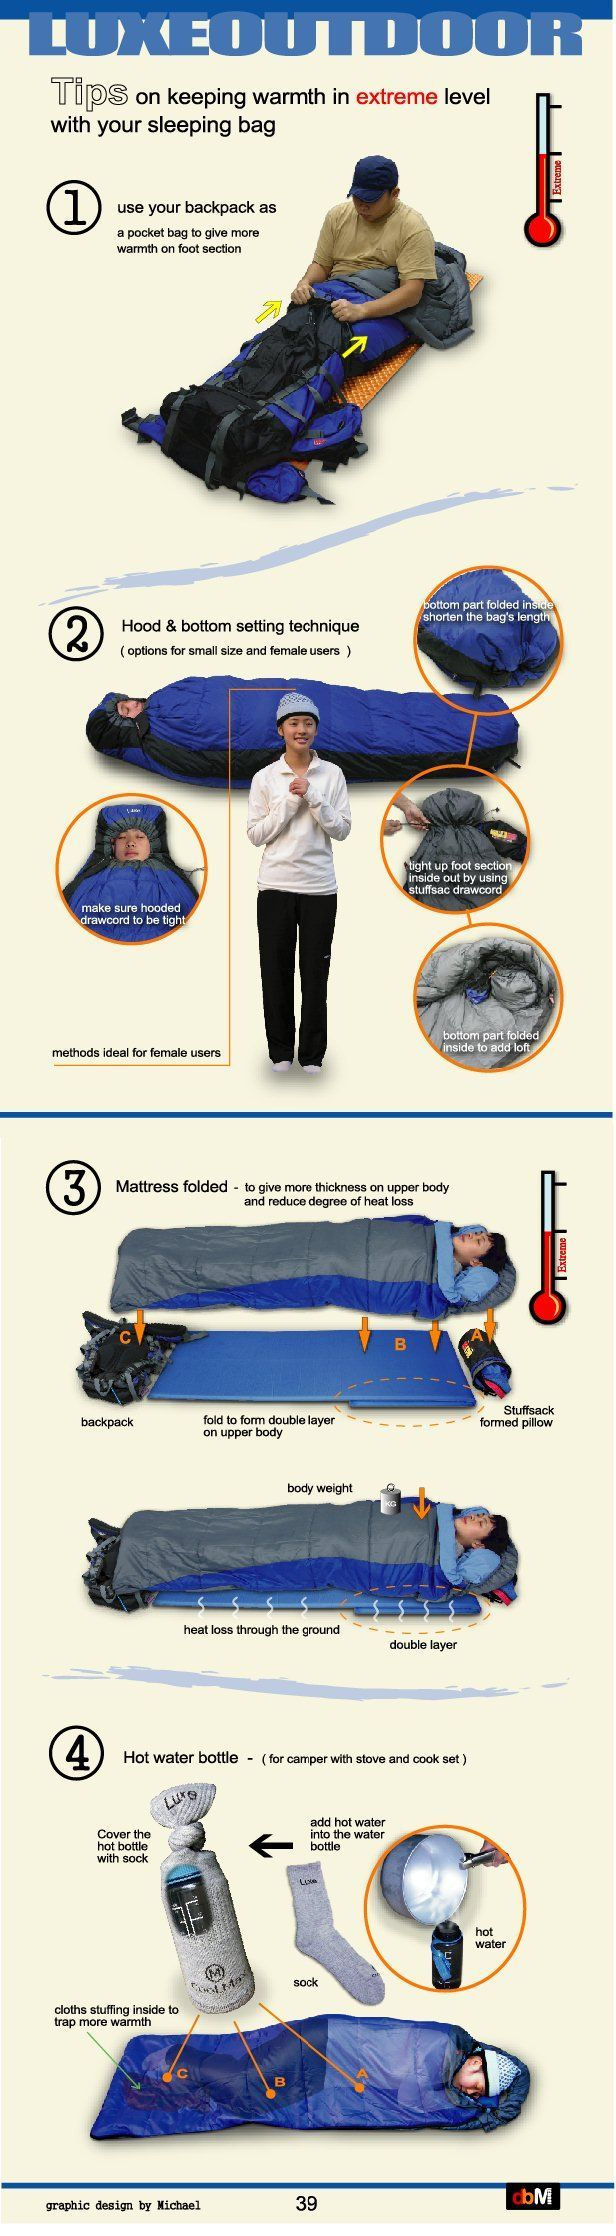 Tips on keeping warm - Early AT hikers need to know these tips by heart and practice them before showing up at the trail.